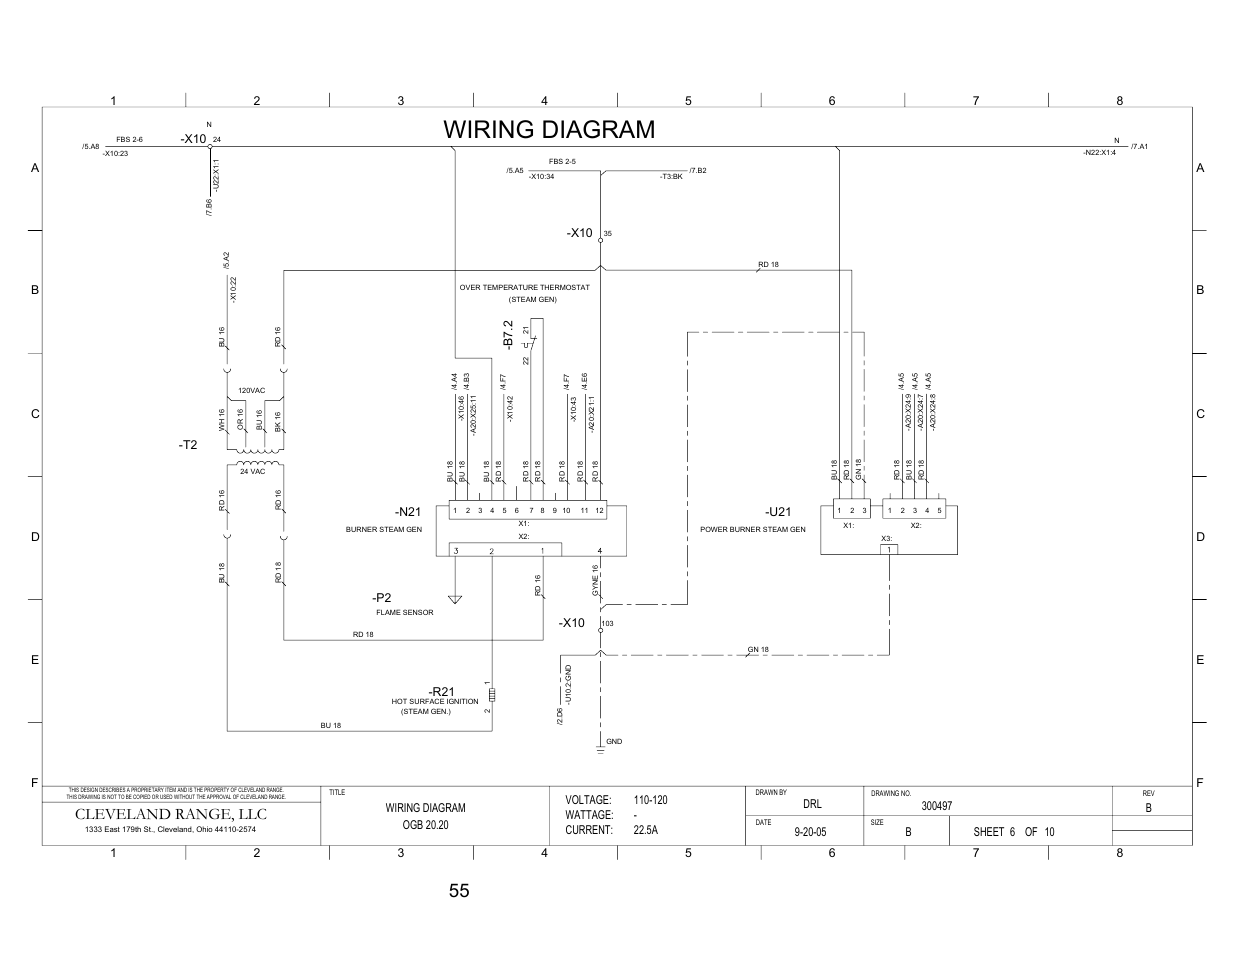 Pg 6, Wiring diagram, Cleveland range, llc | B7. 2, Voltage